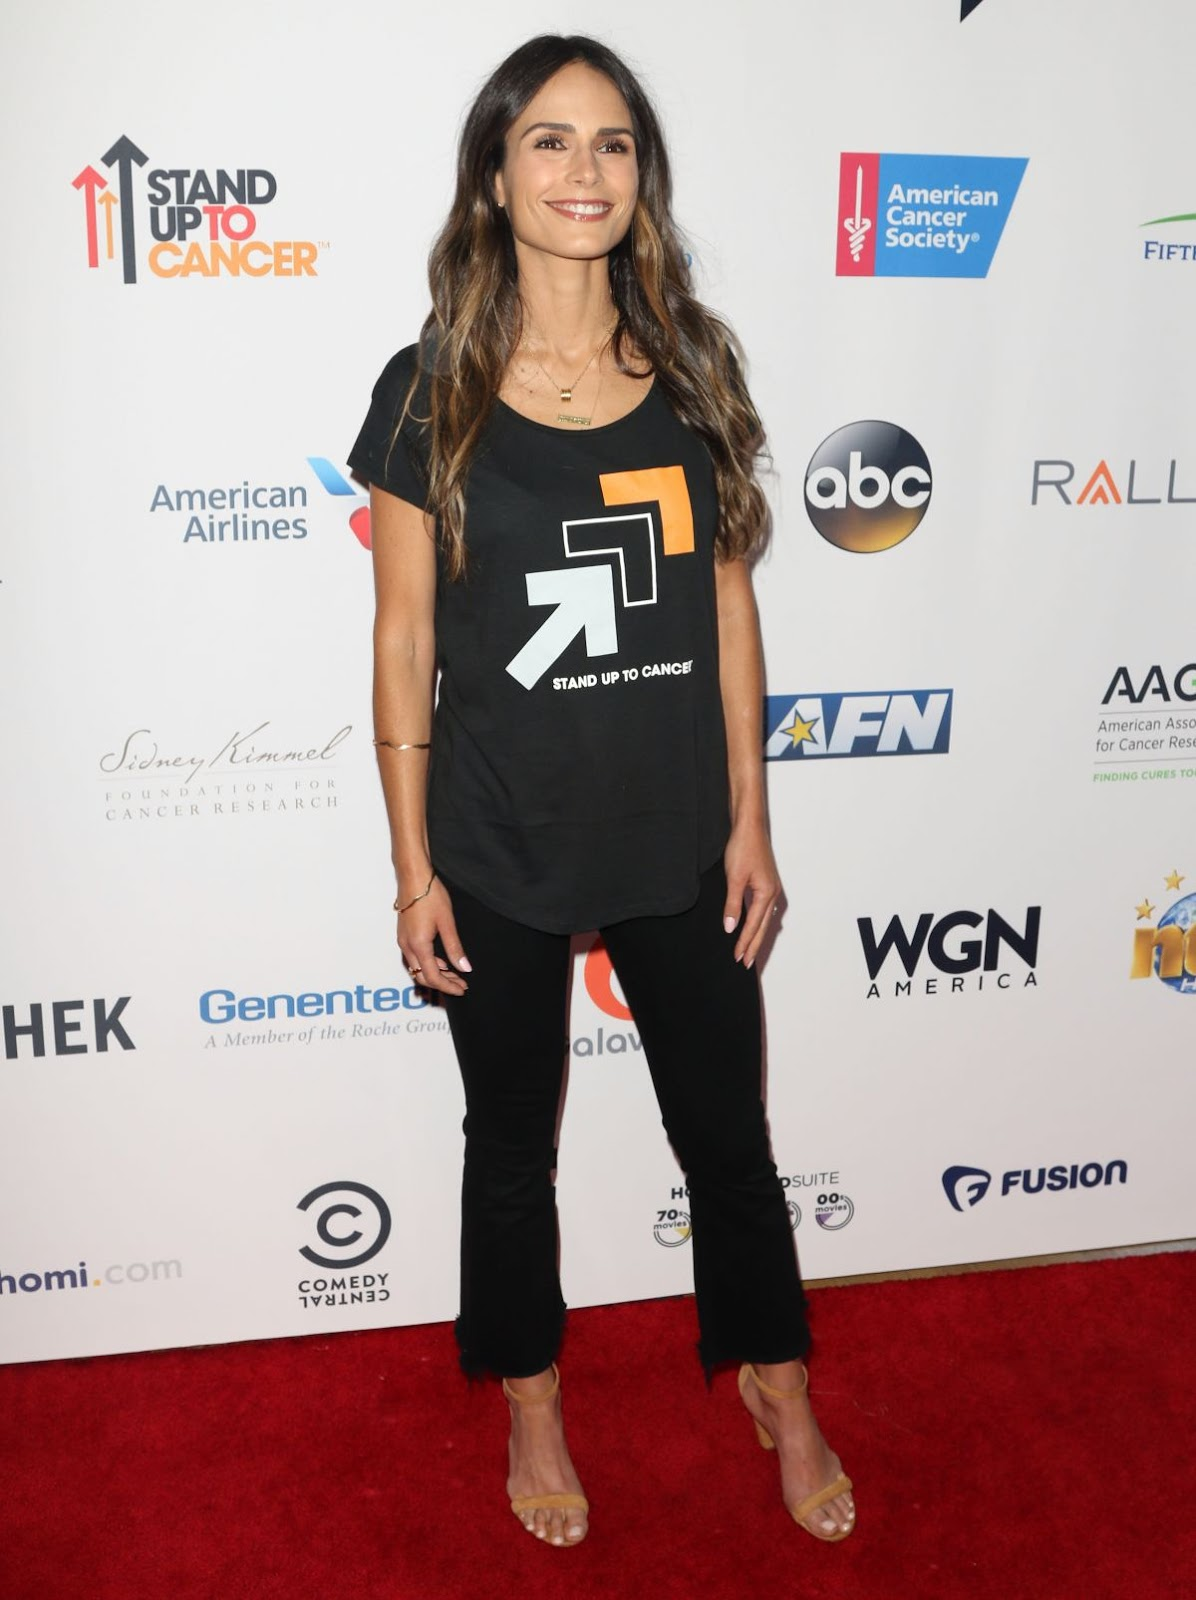 'Fast & Furious 8' actress Jordana Brewster At 5th Biennial Stand Up To Cancer In Los Angeles